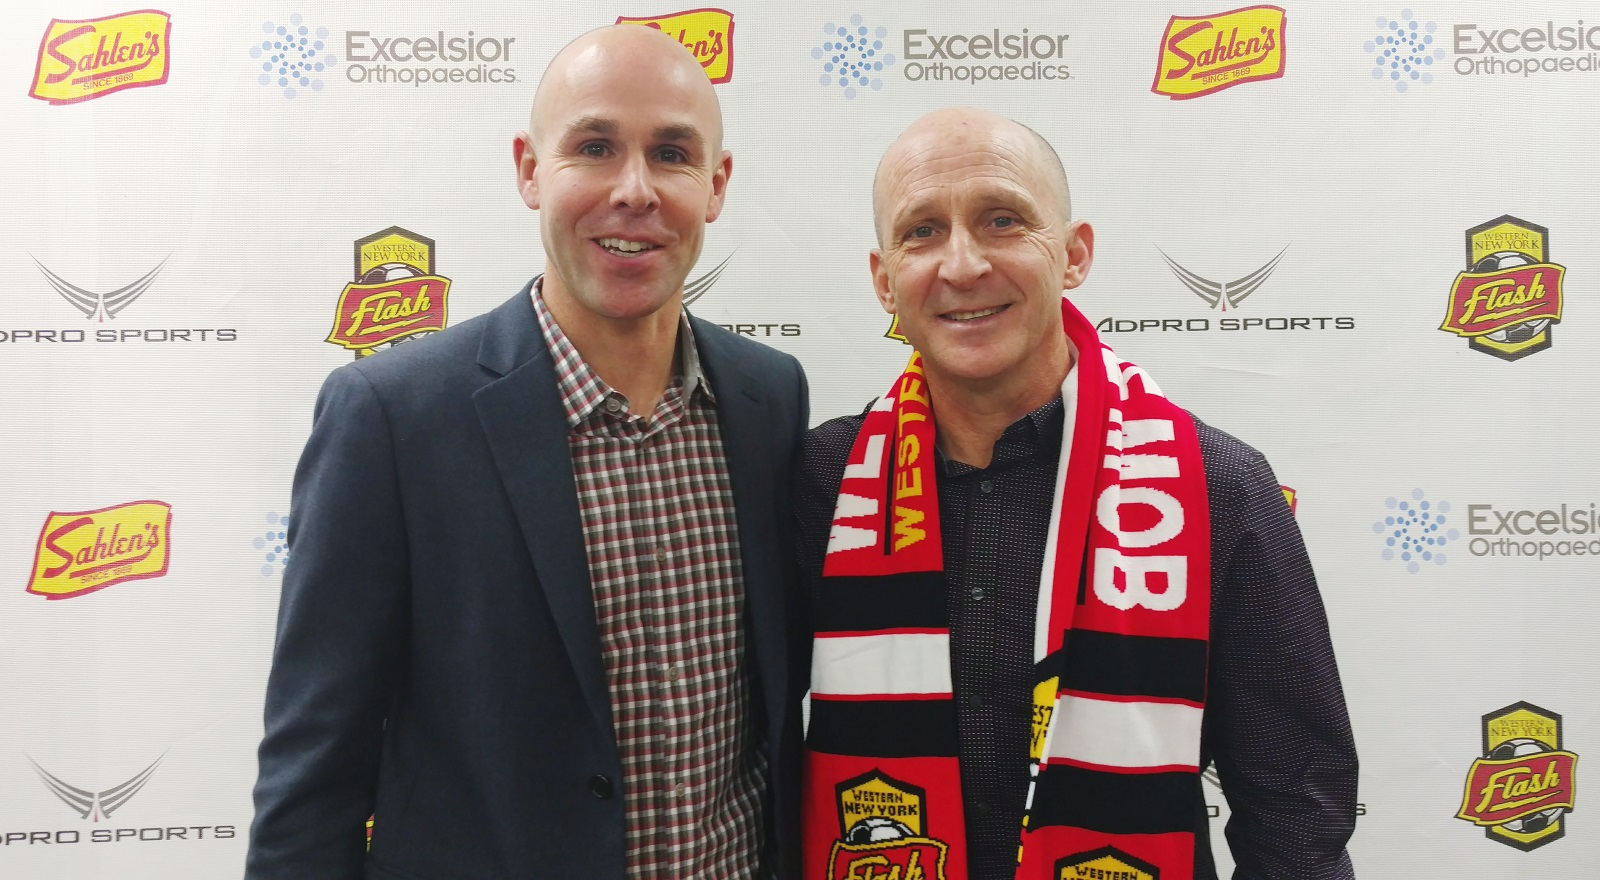 Aaran Lines, left, announced the hiring of Paul Riley, right, his replacement as Flash head coach. (via the Flash)